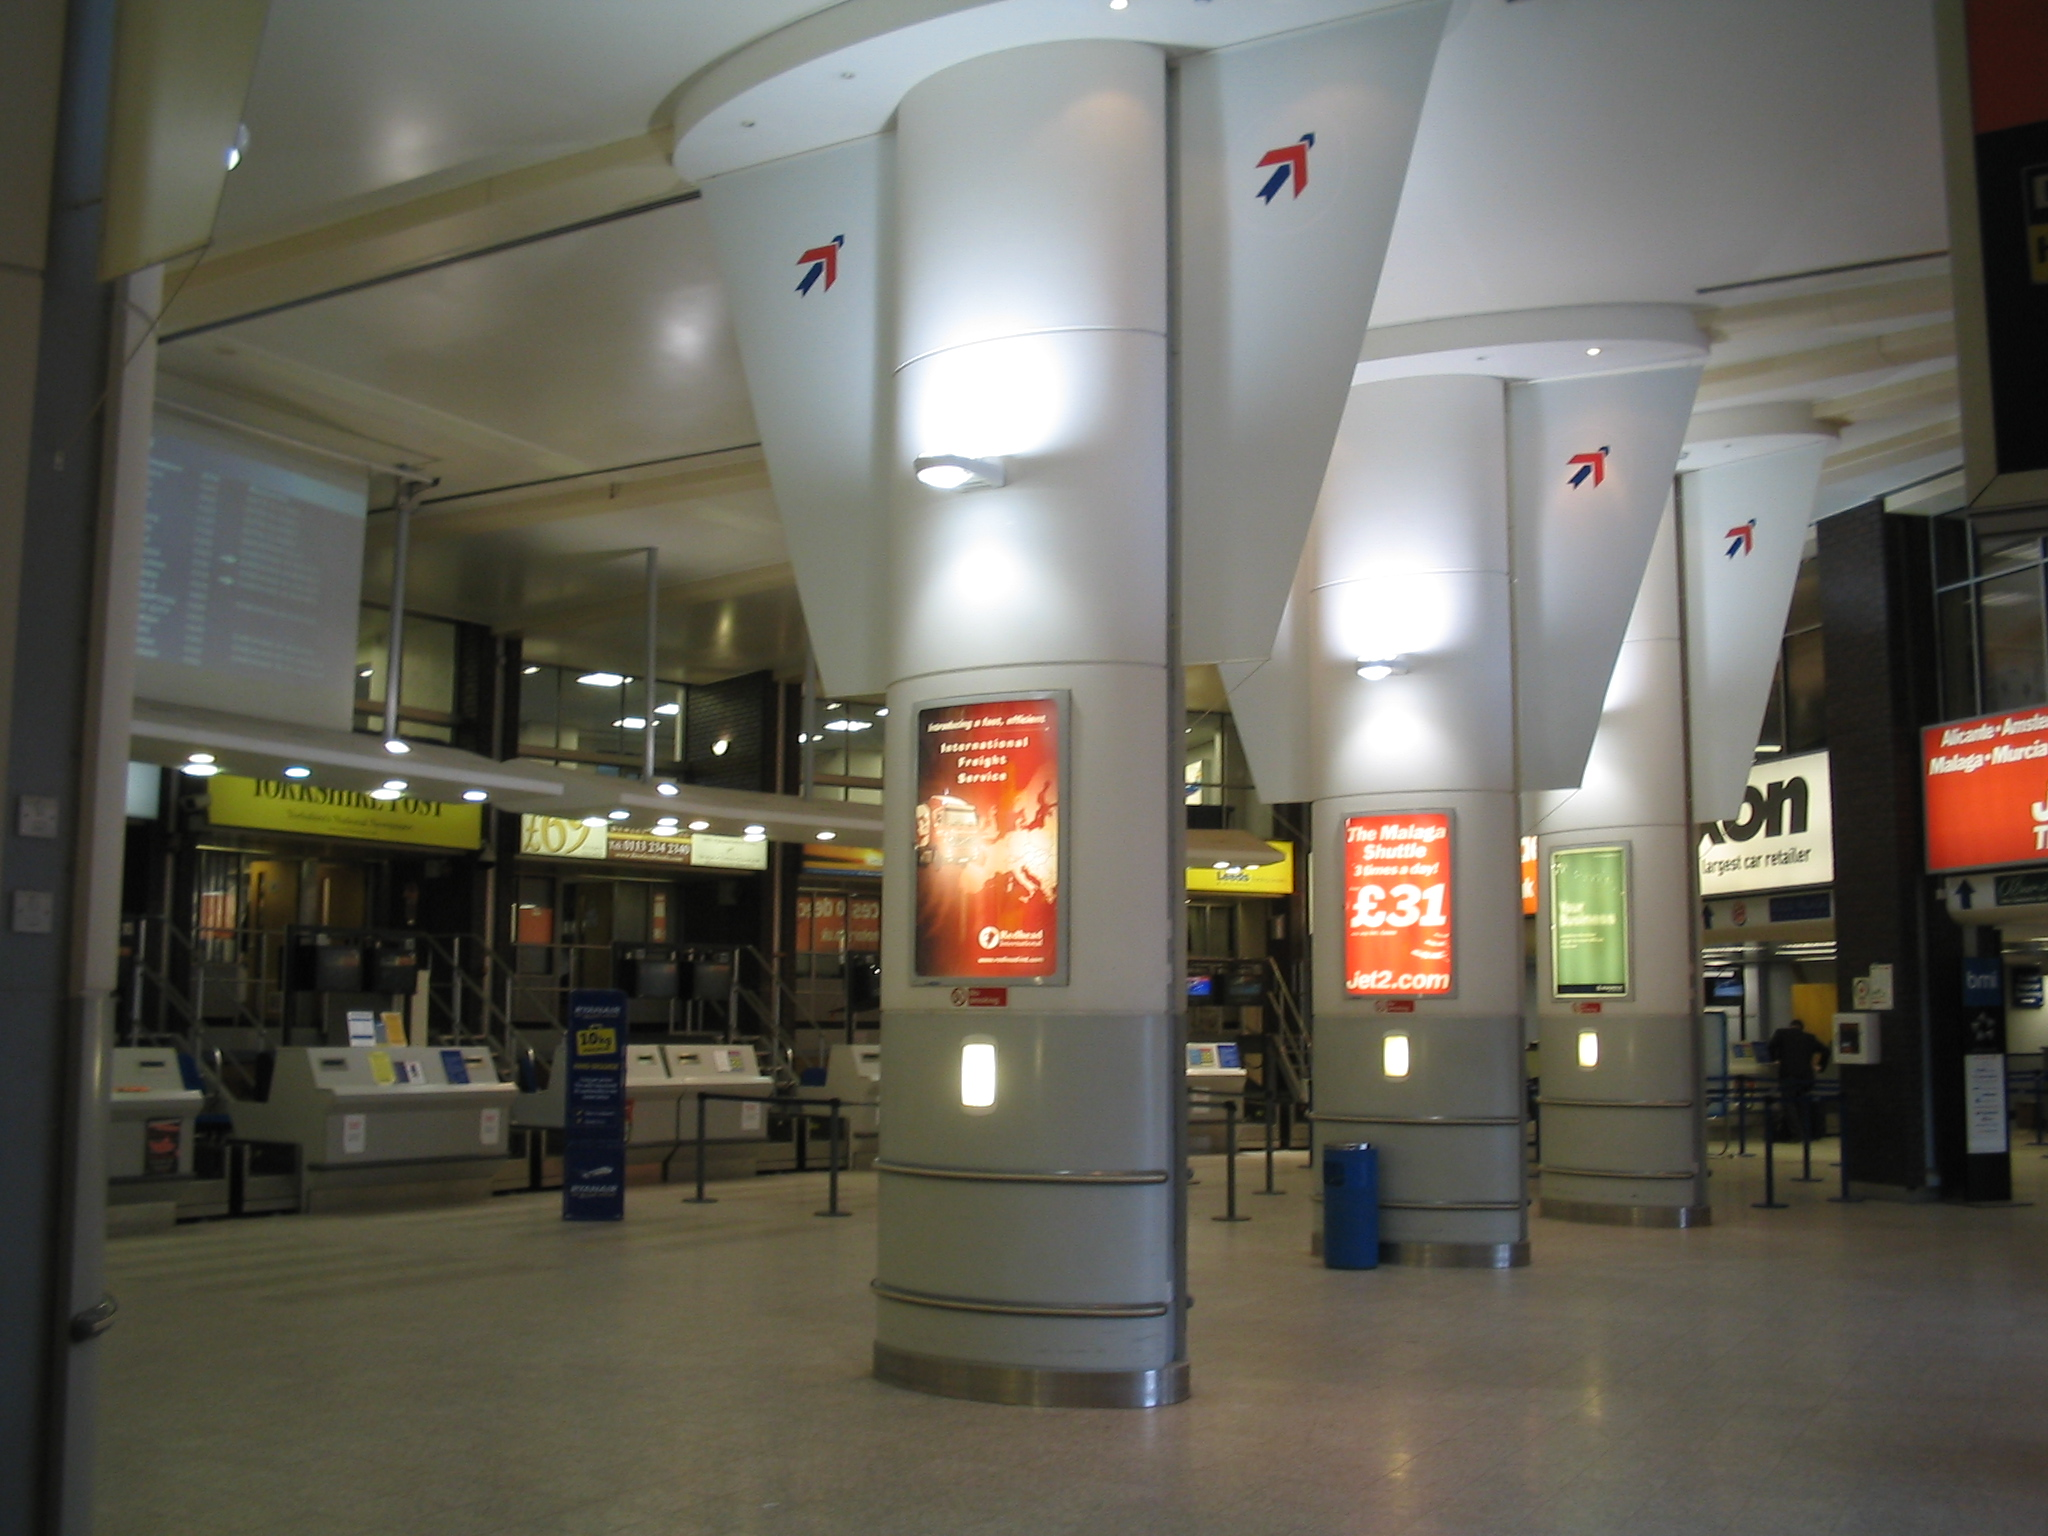 File:Leeds Bradford International Airport terminal, inside ...